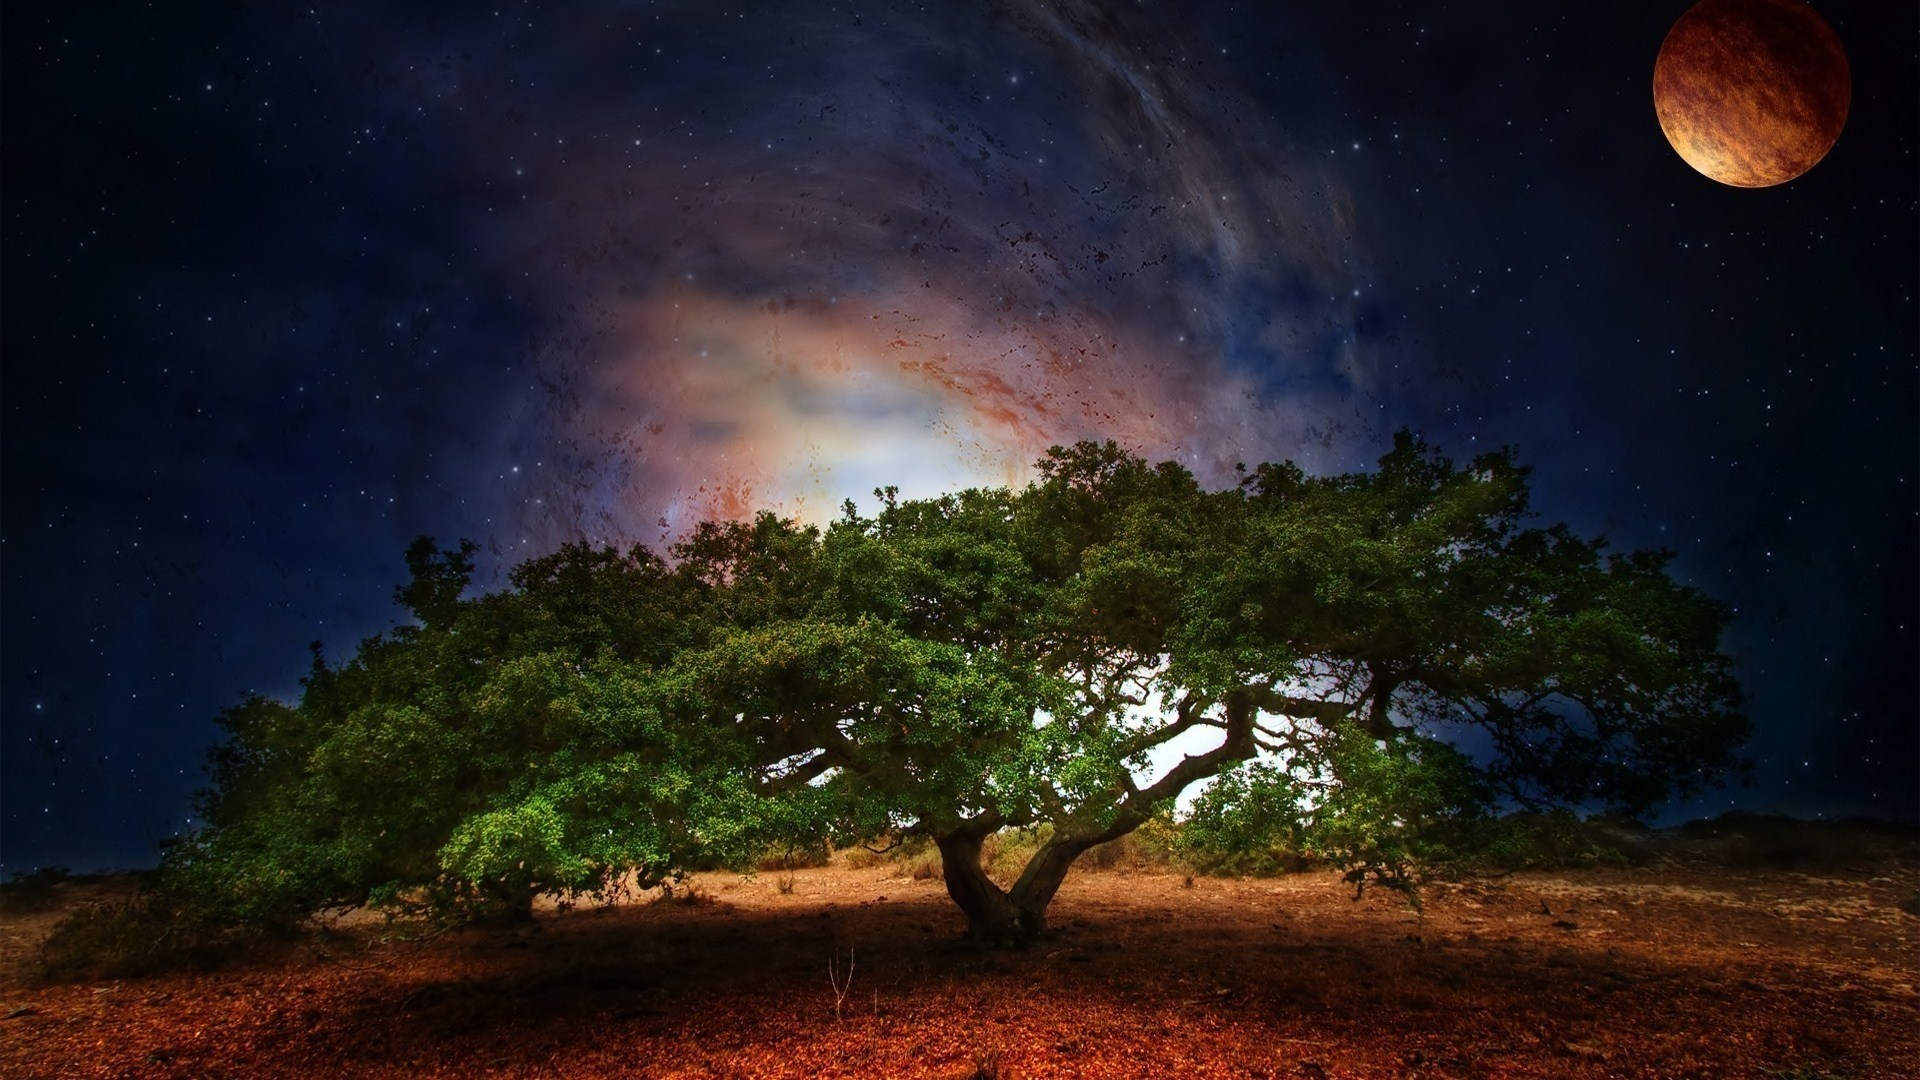 tree art planet light fantasy sci-fi galaxy sky stars